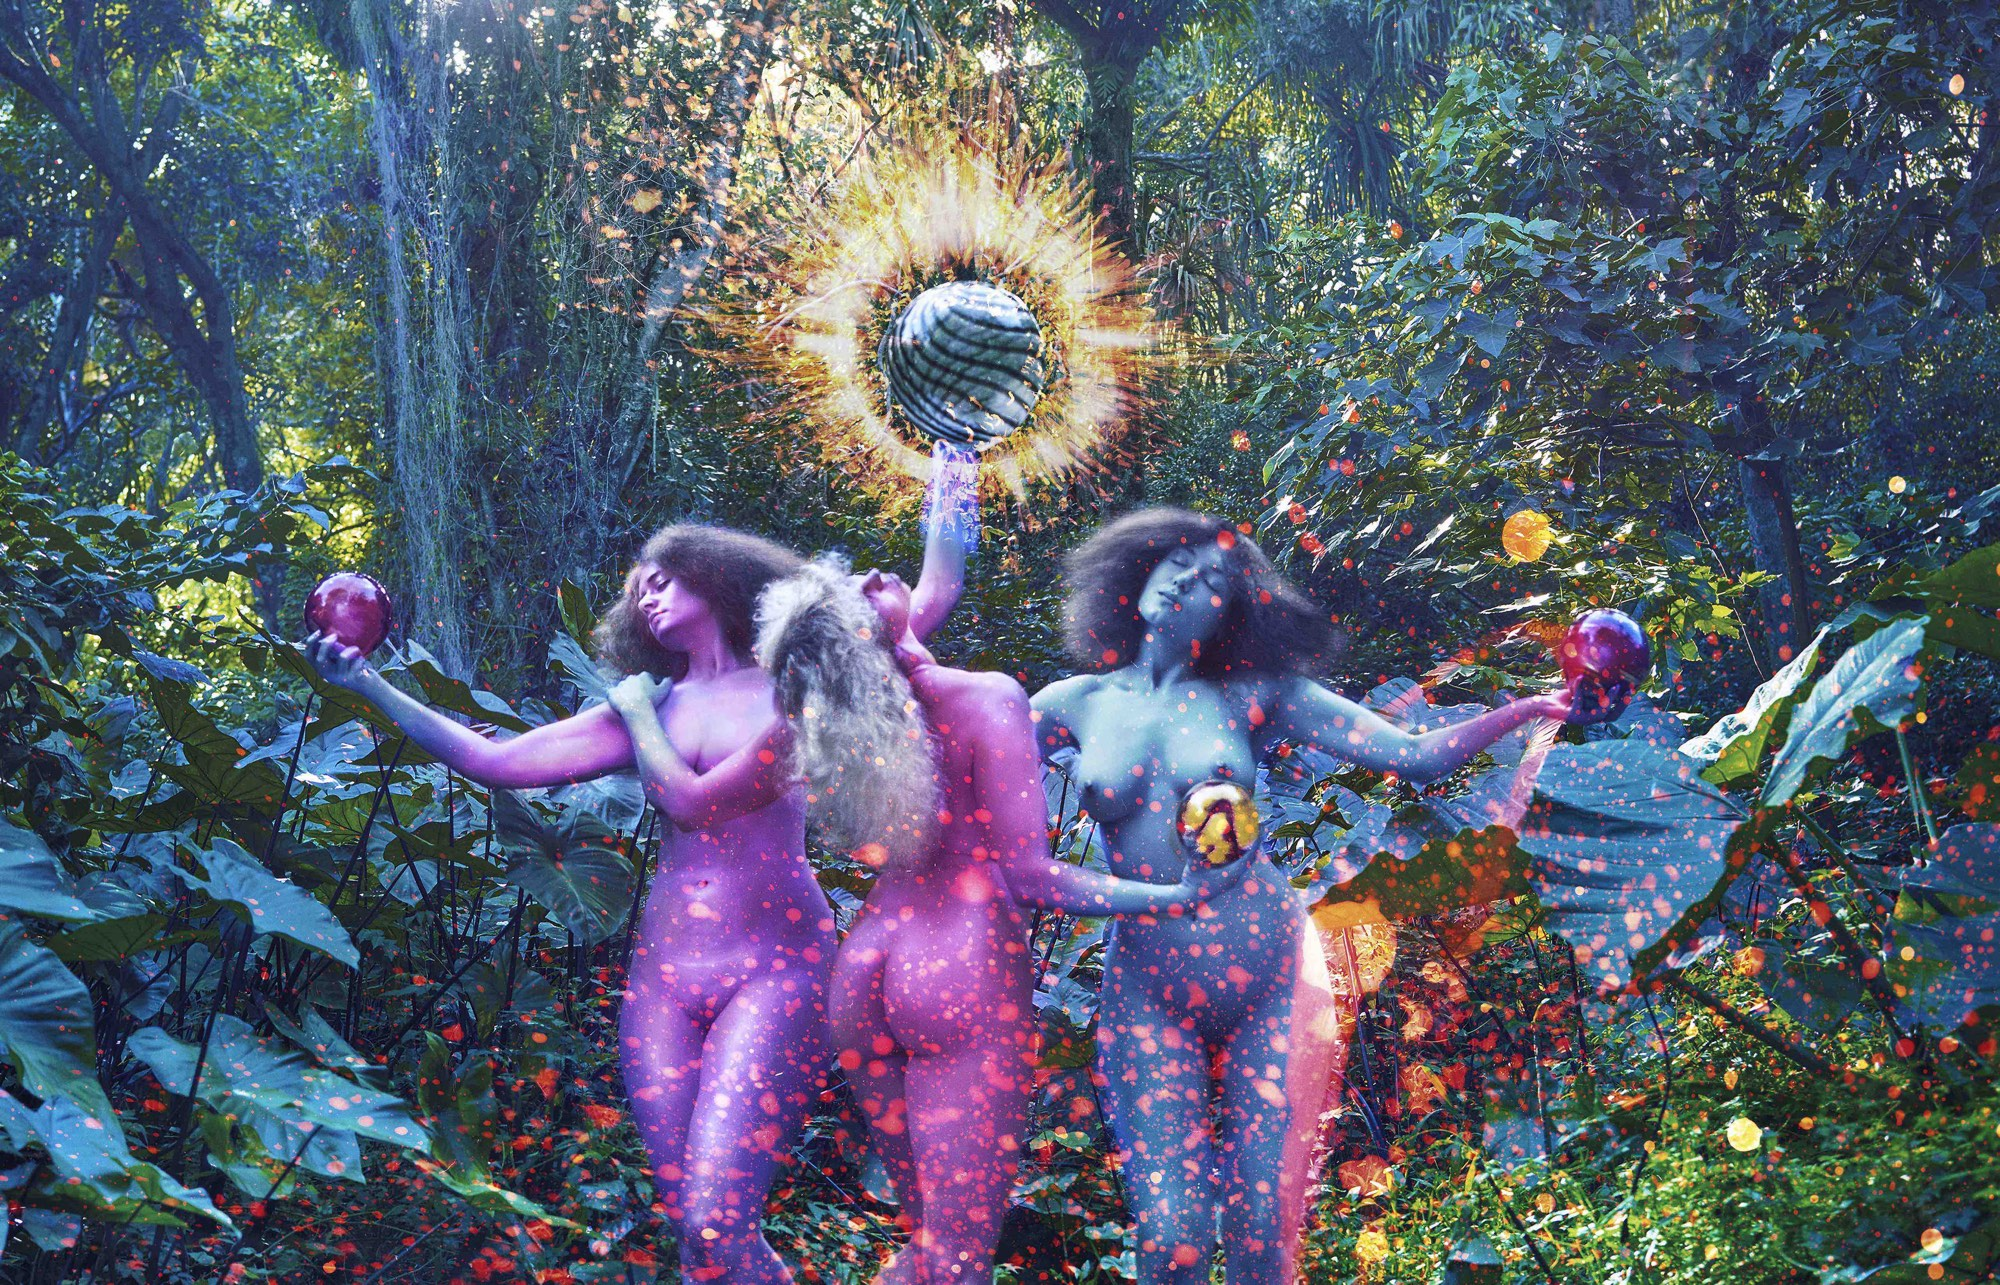 foto: © David LaChapelle. Courtesy Reflex Amsterdam - Praise Dance, 2009